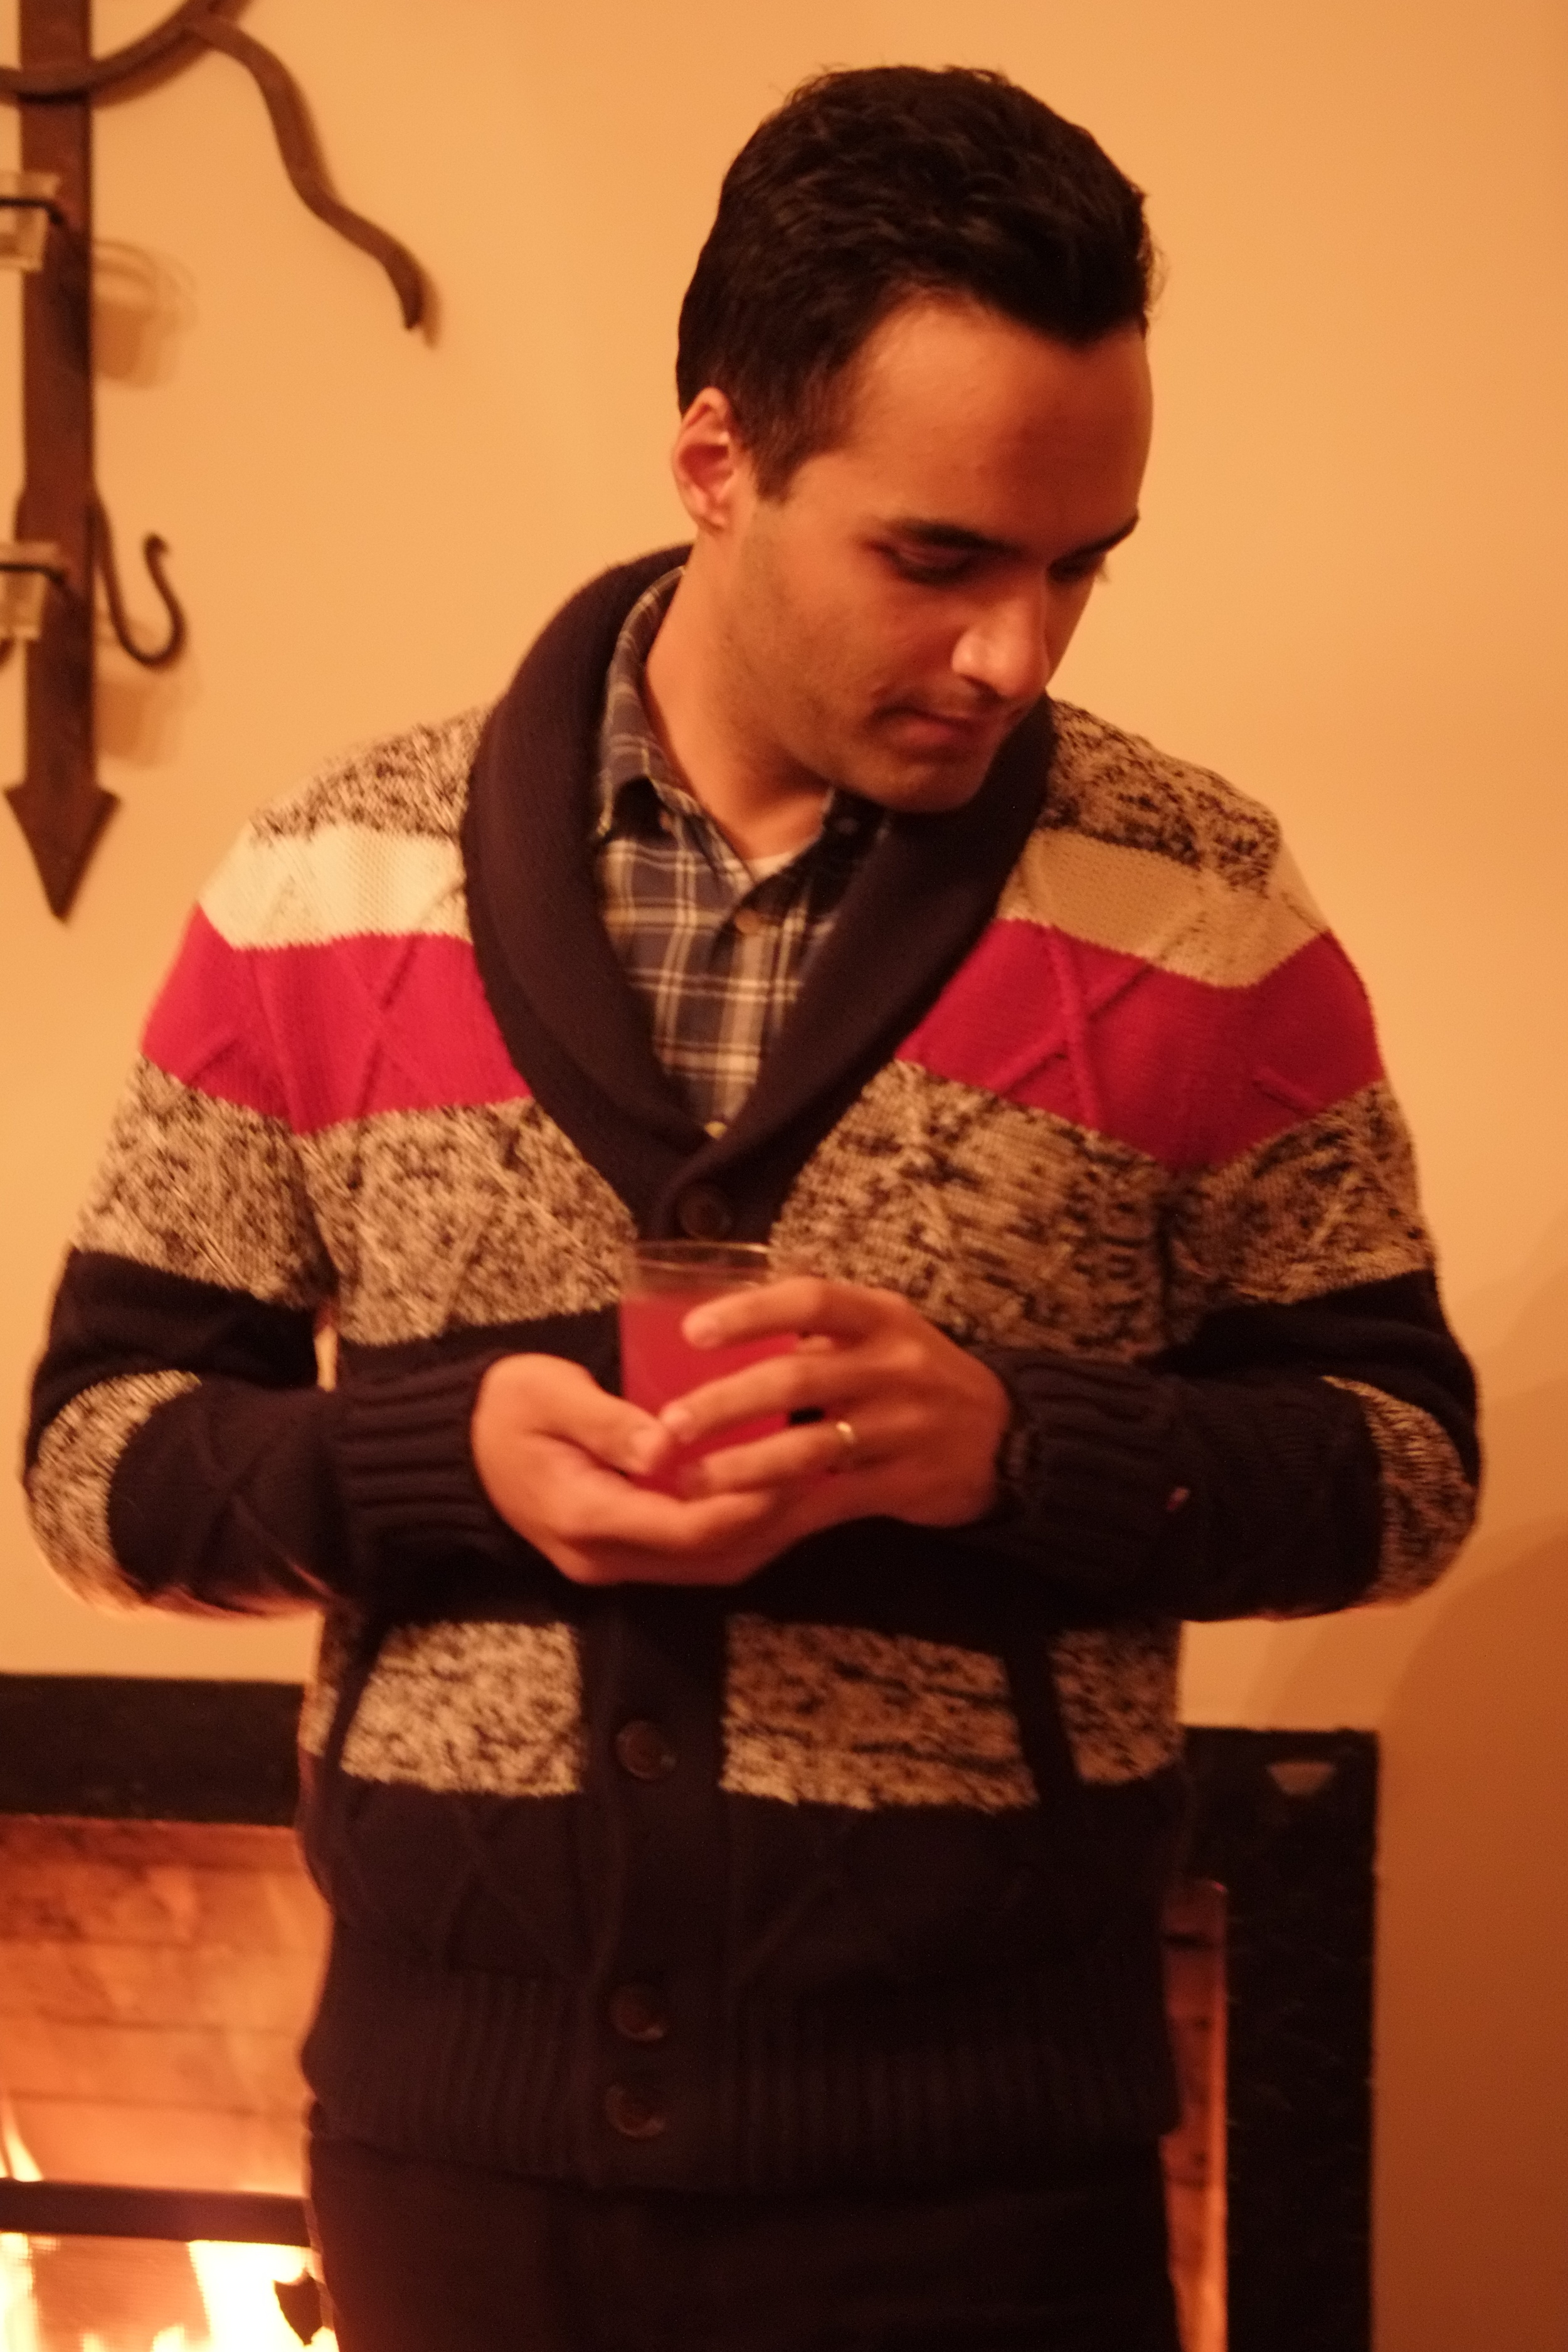 pedram, at the house, jan 2015